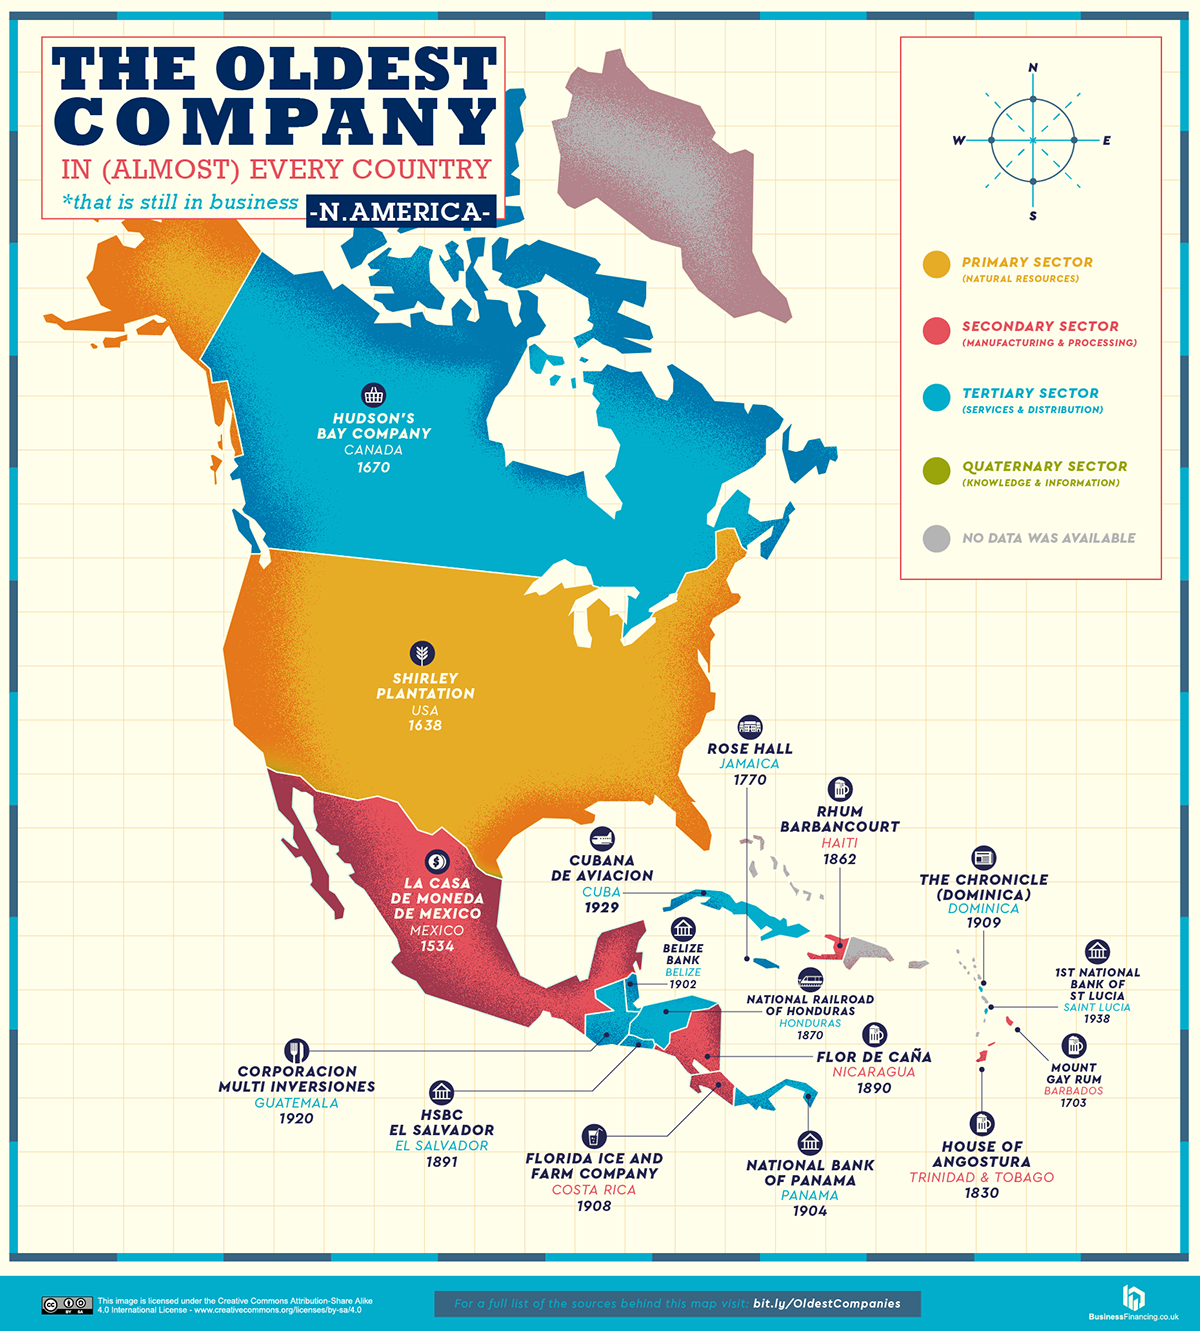 The Oldest Company in North America